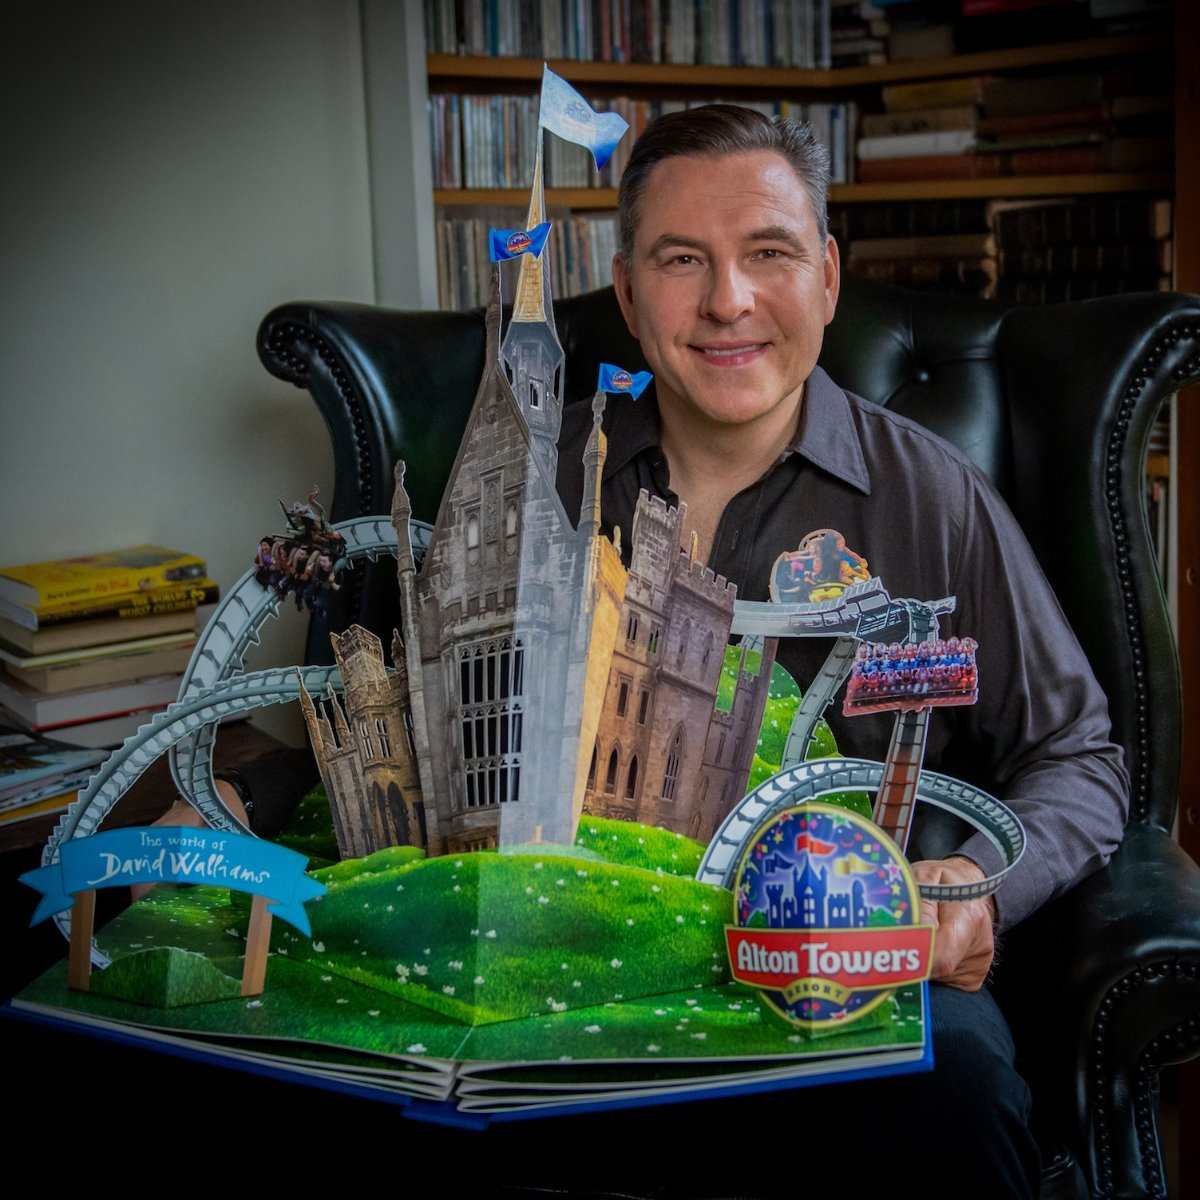 To celebrate @WorldBookDayUK & Gangsta Granny: The Ride coming to Alton Towers, we've teamed up with @HarperCollinsch to launch The World of David Walliams competition for primary schools! https://t.co/M0iBo5HV0a (T&C's apply. Ends 11.59pm 10.03.20) #WorldBookDay #DavidWalliams https://t.co/uSkS4Jx1qE